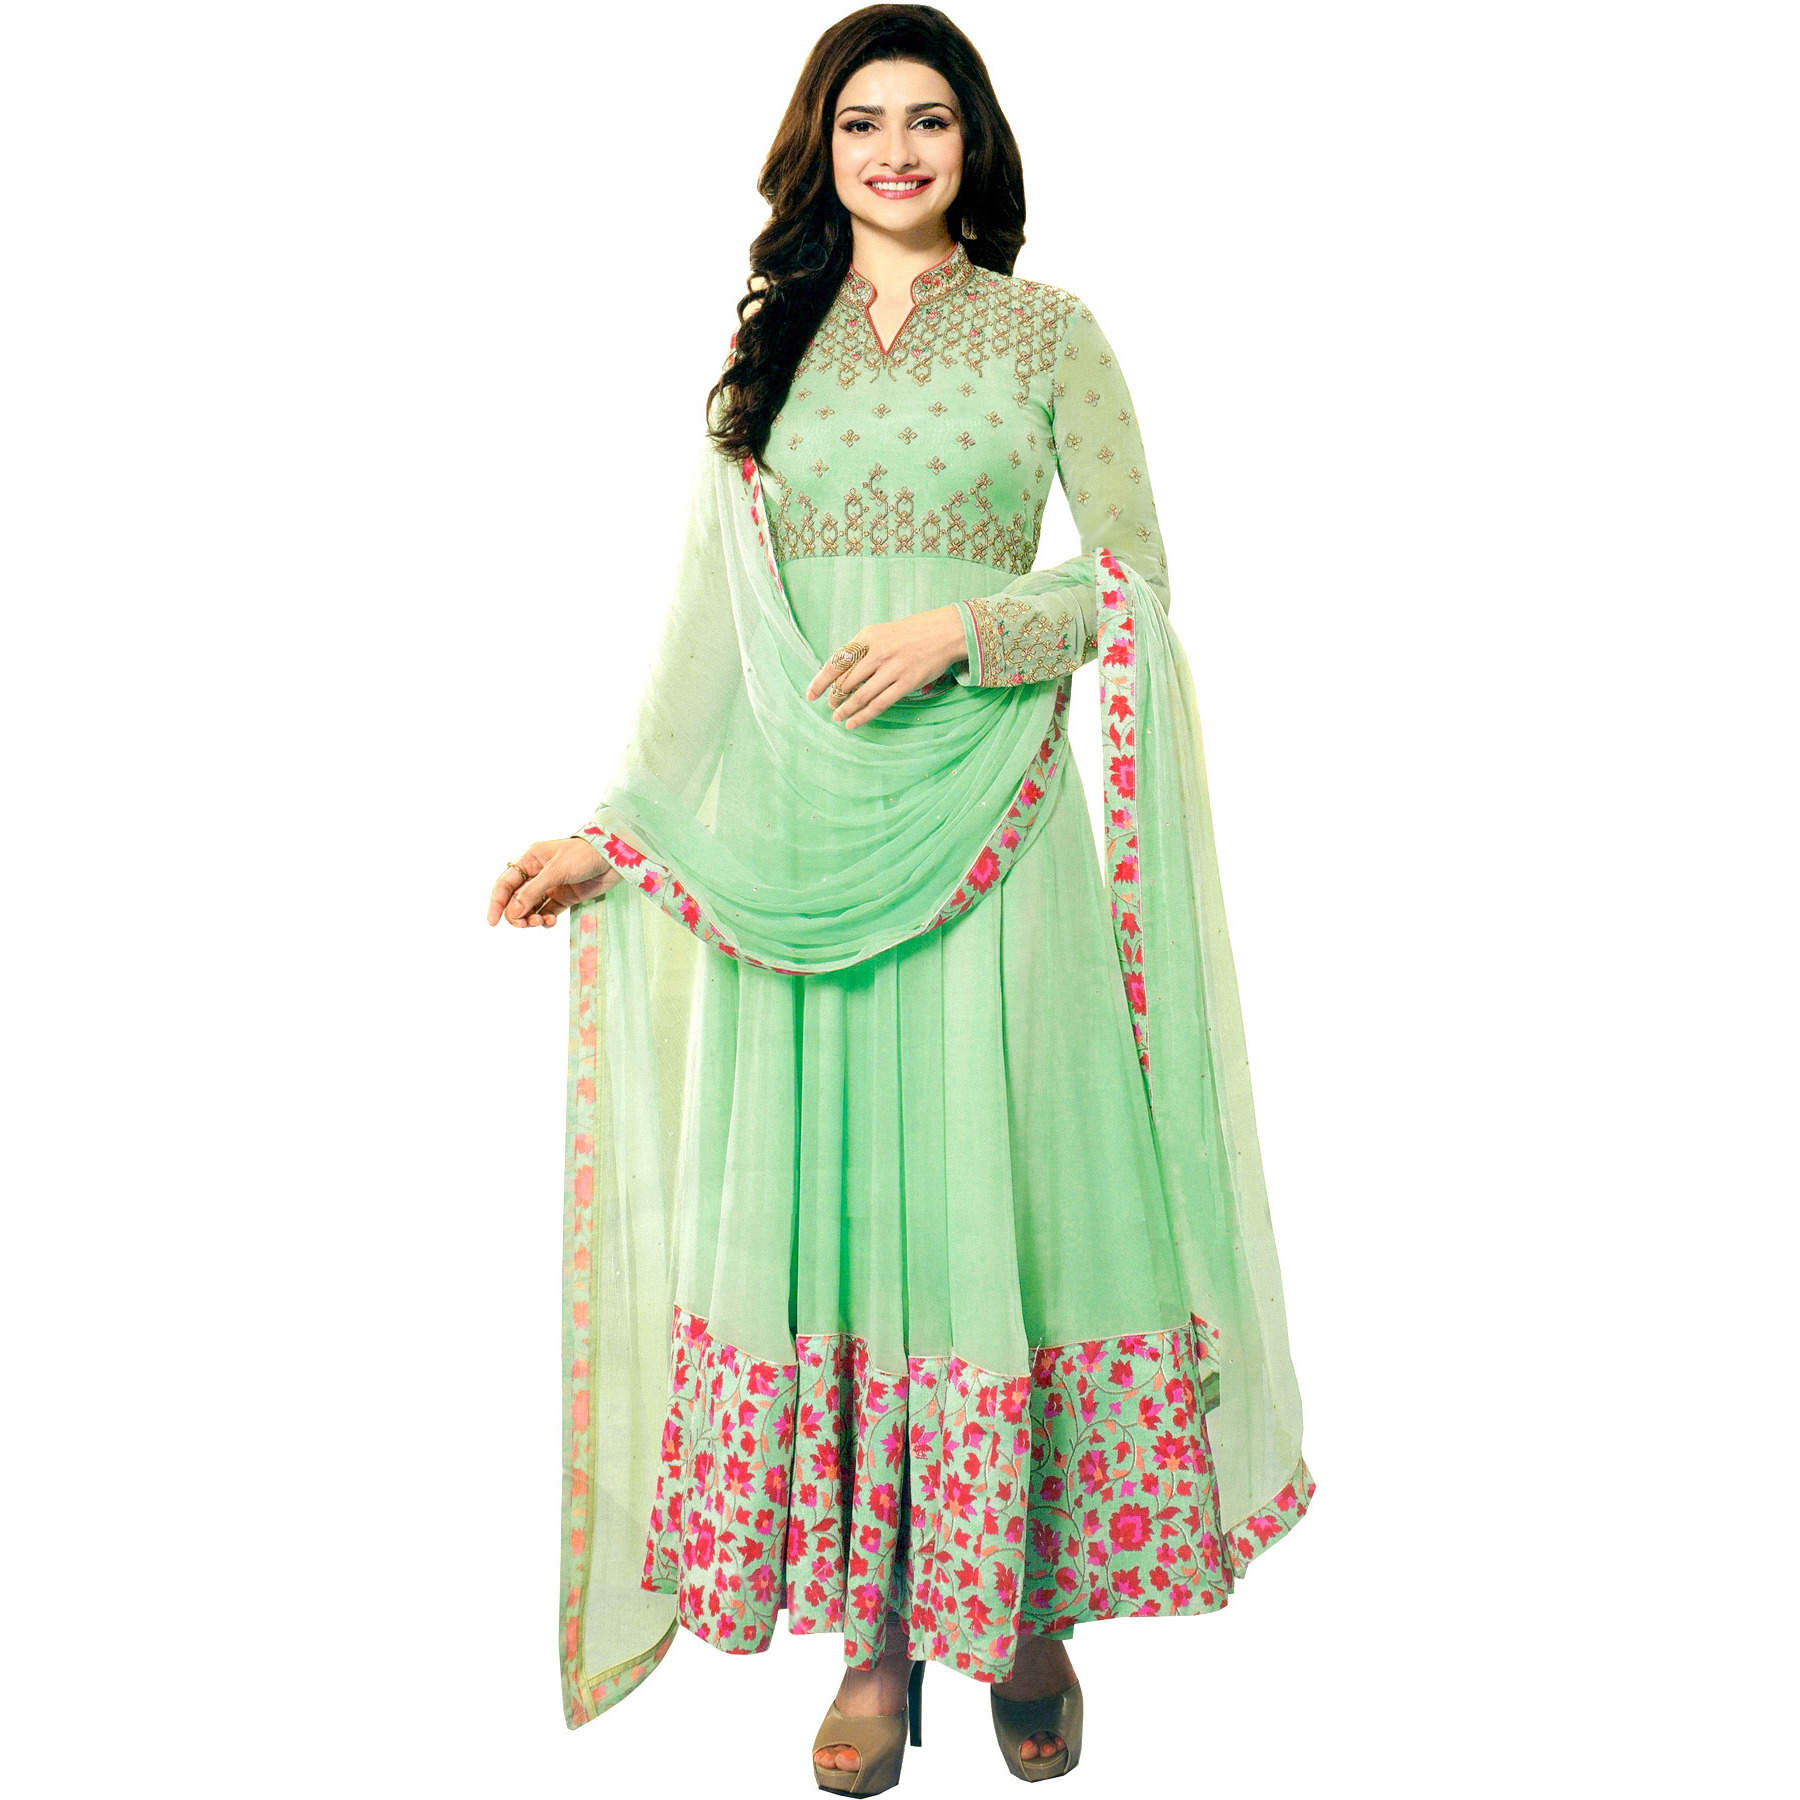 Pastel-Green Prachi Designer Anarkali Suit with Embroidery and Floral Print on Border